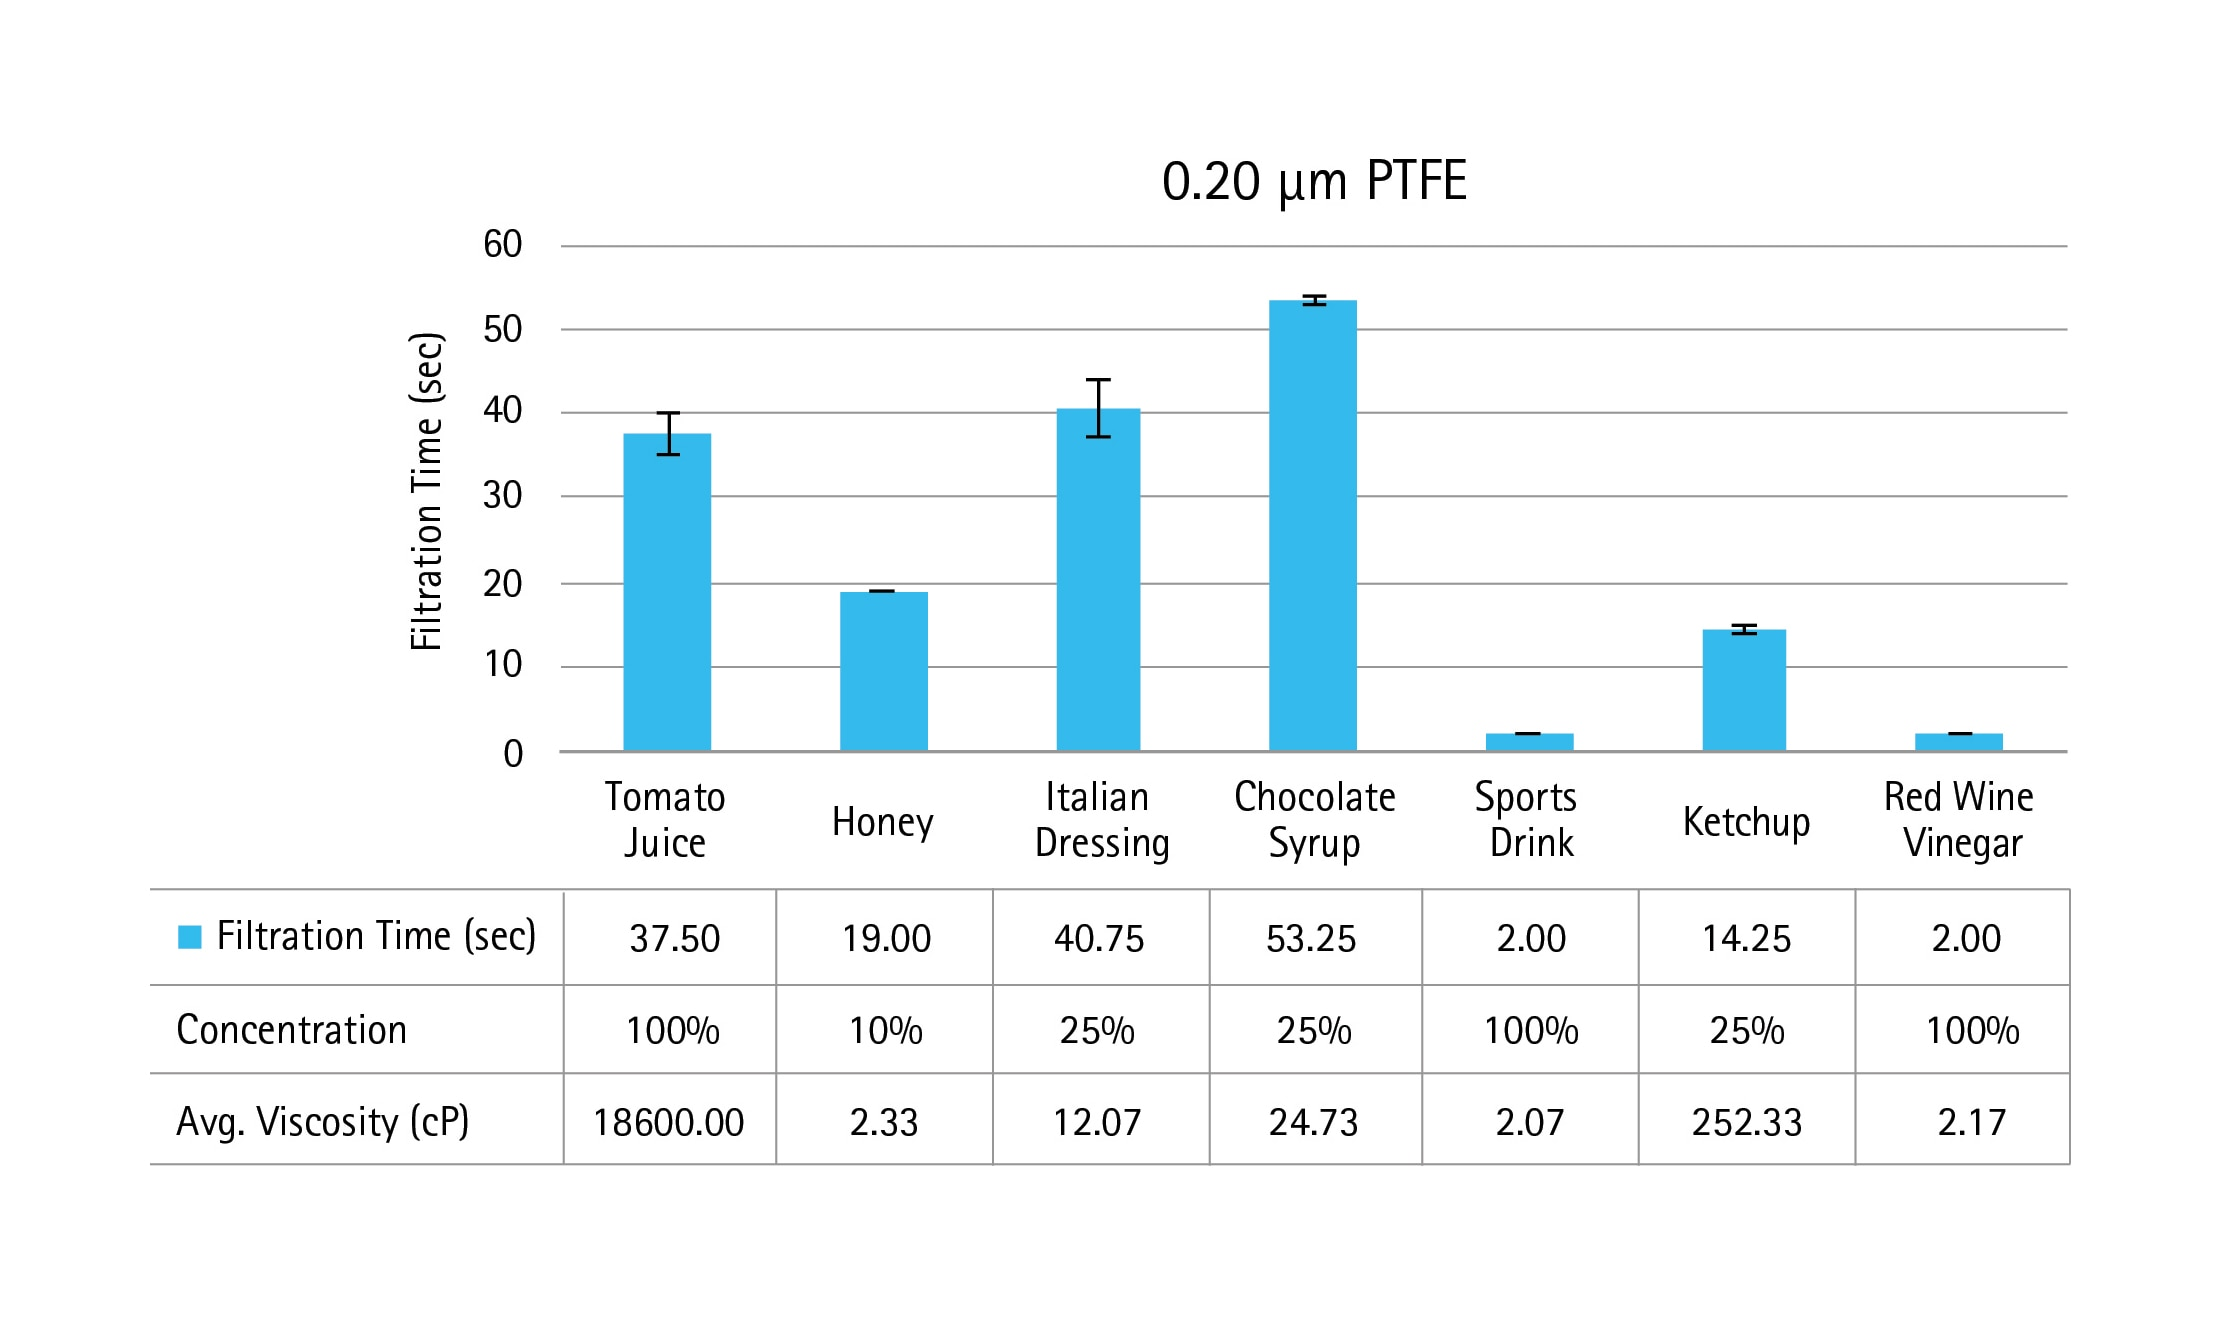 0.20 µm PTFE membrane filtration times using the Samplicity® filtration System